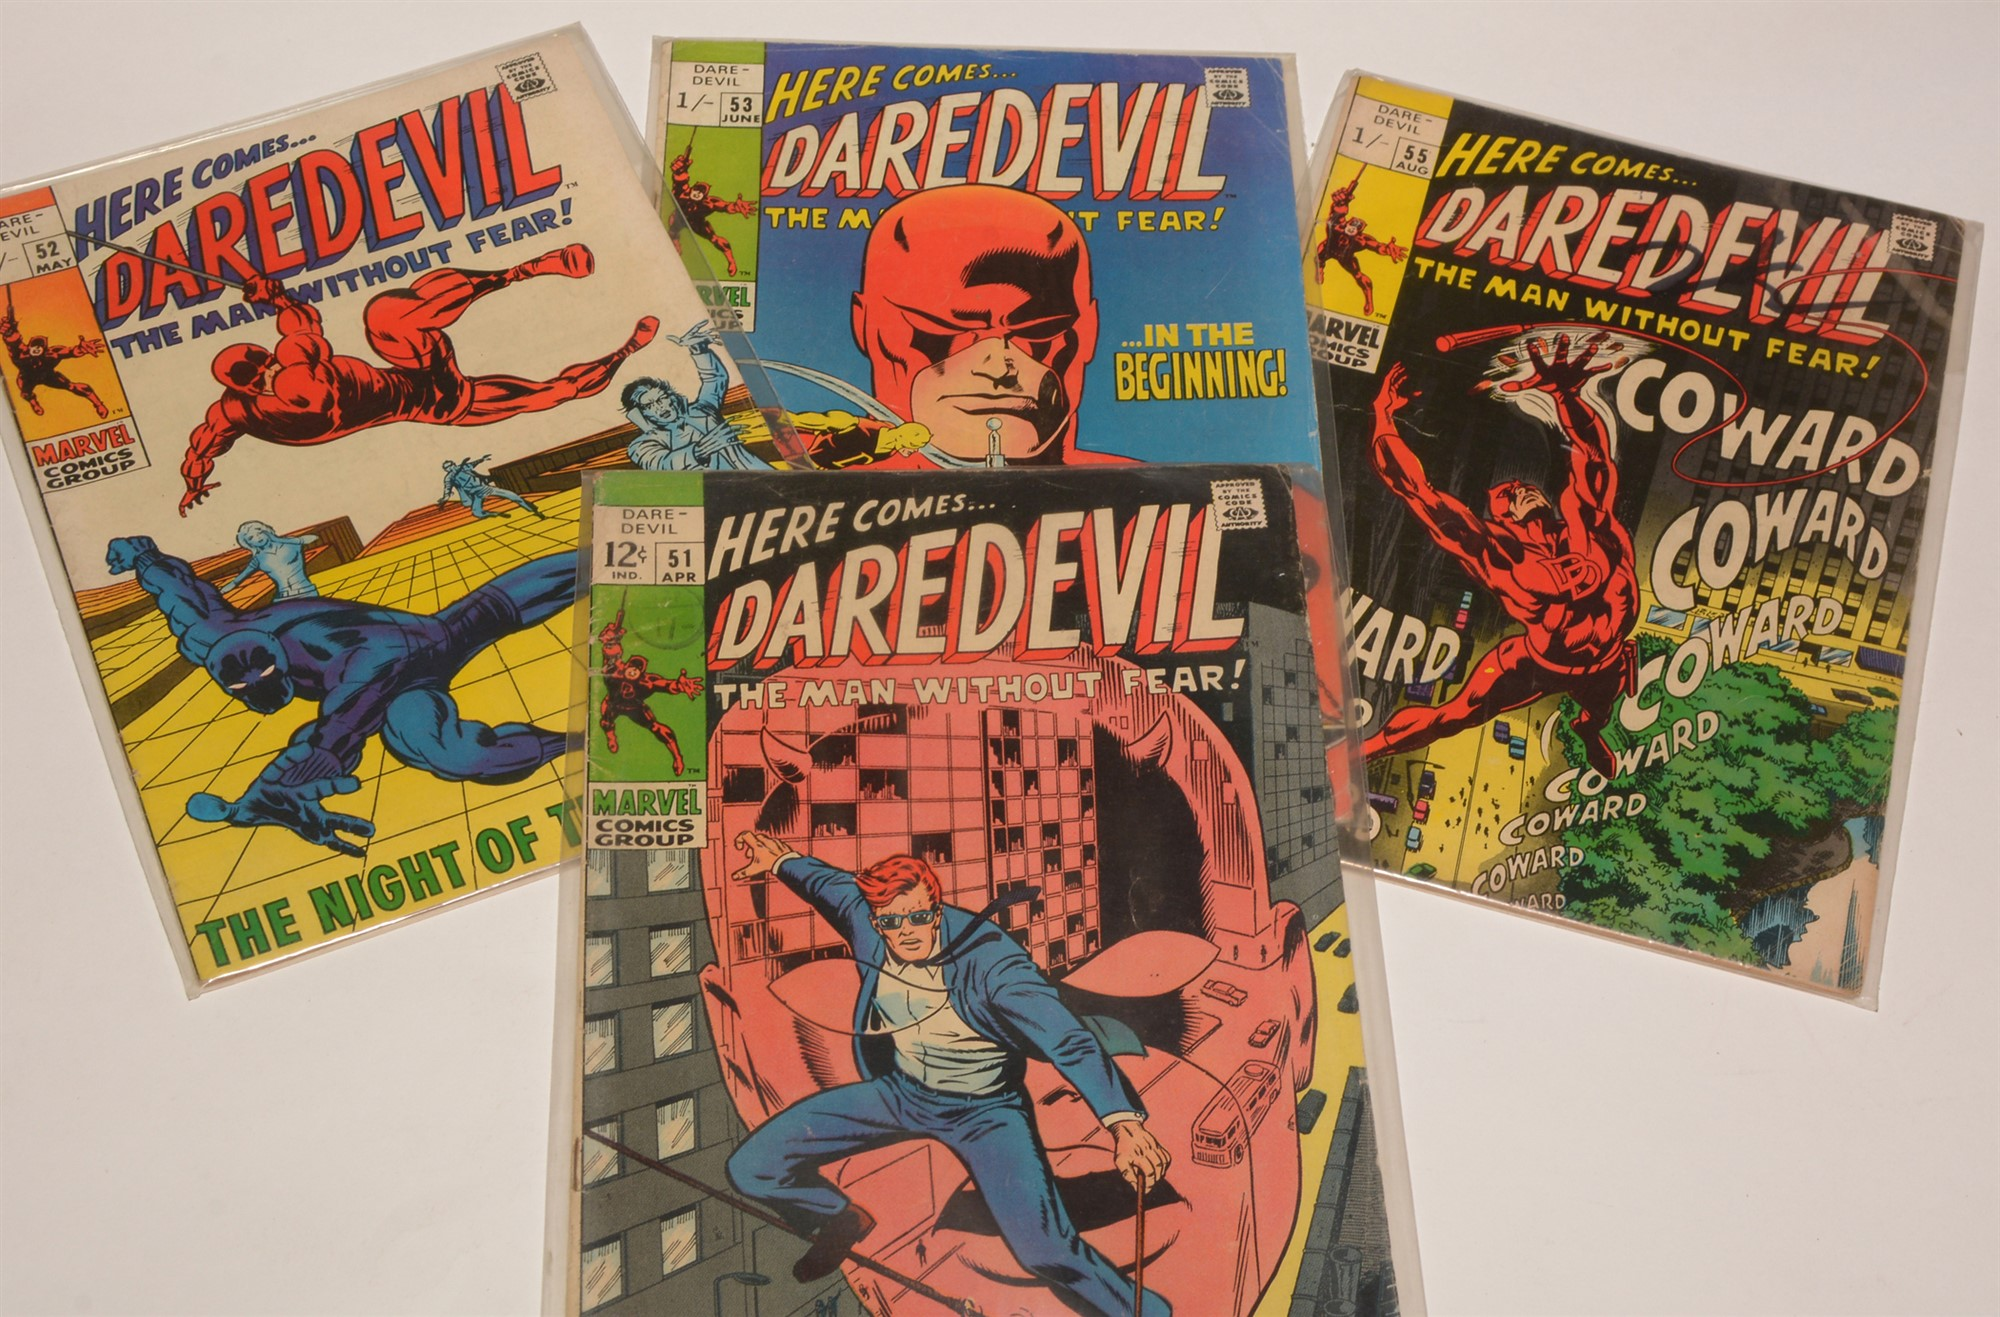 Daredevil No's. 51, 52, 53, 55, 193, 198, 200, 218, 220 and sundry subsequent issues, highest number - Image 2 of 2